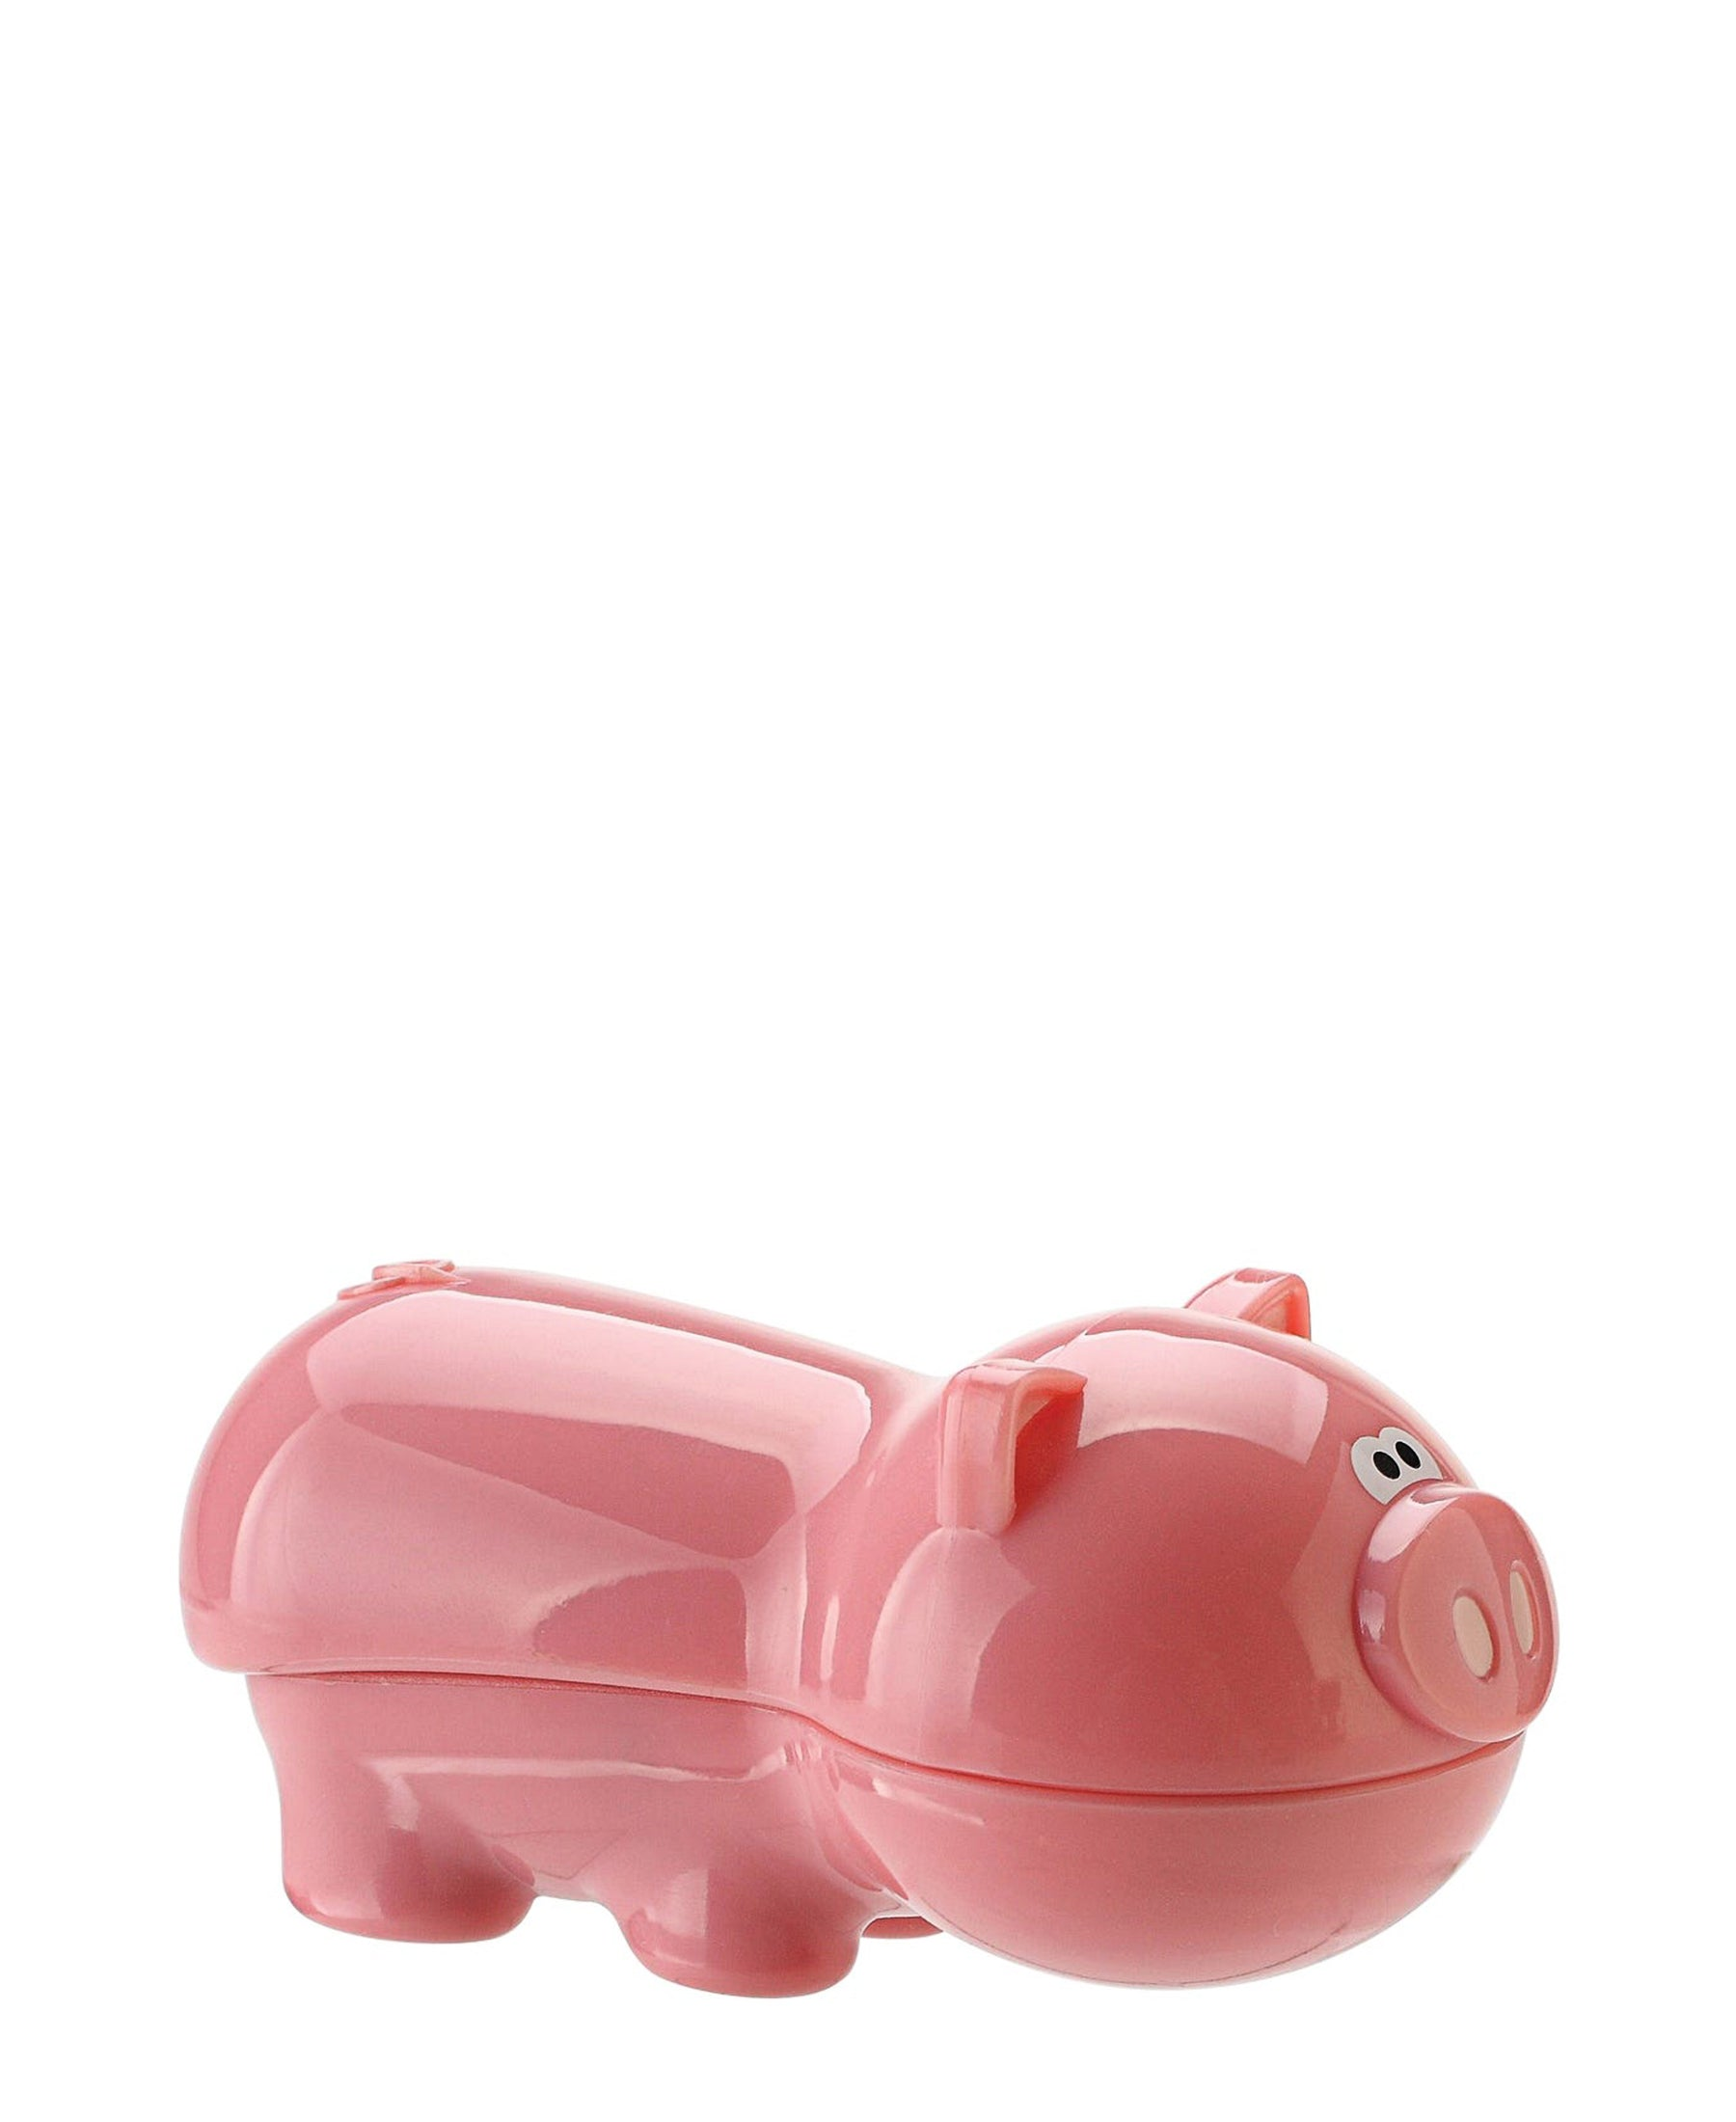 Joie Oink Oink Mini Bag Clip - Pink